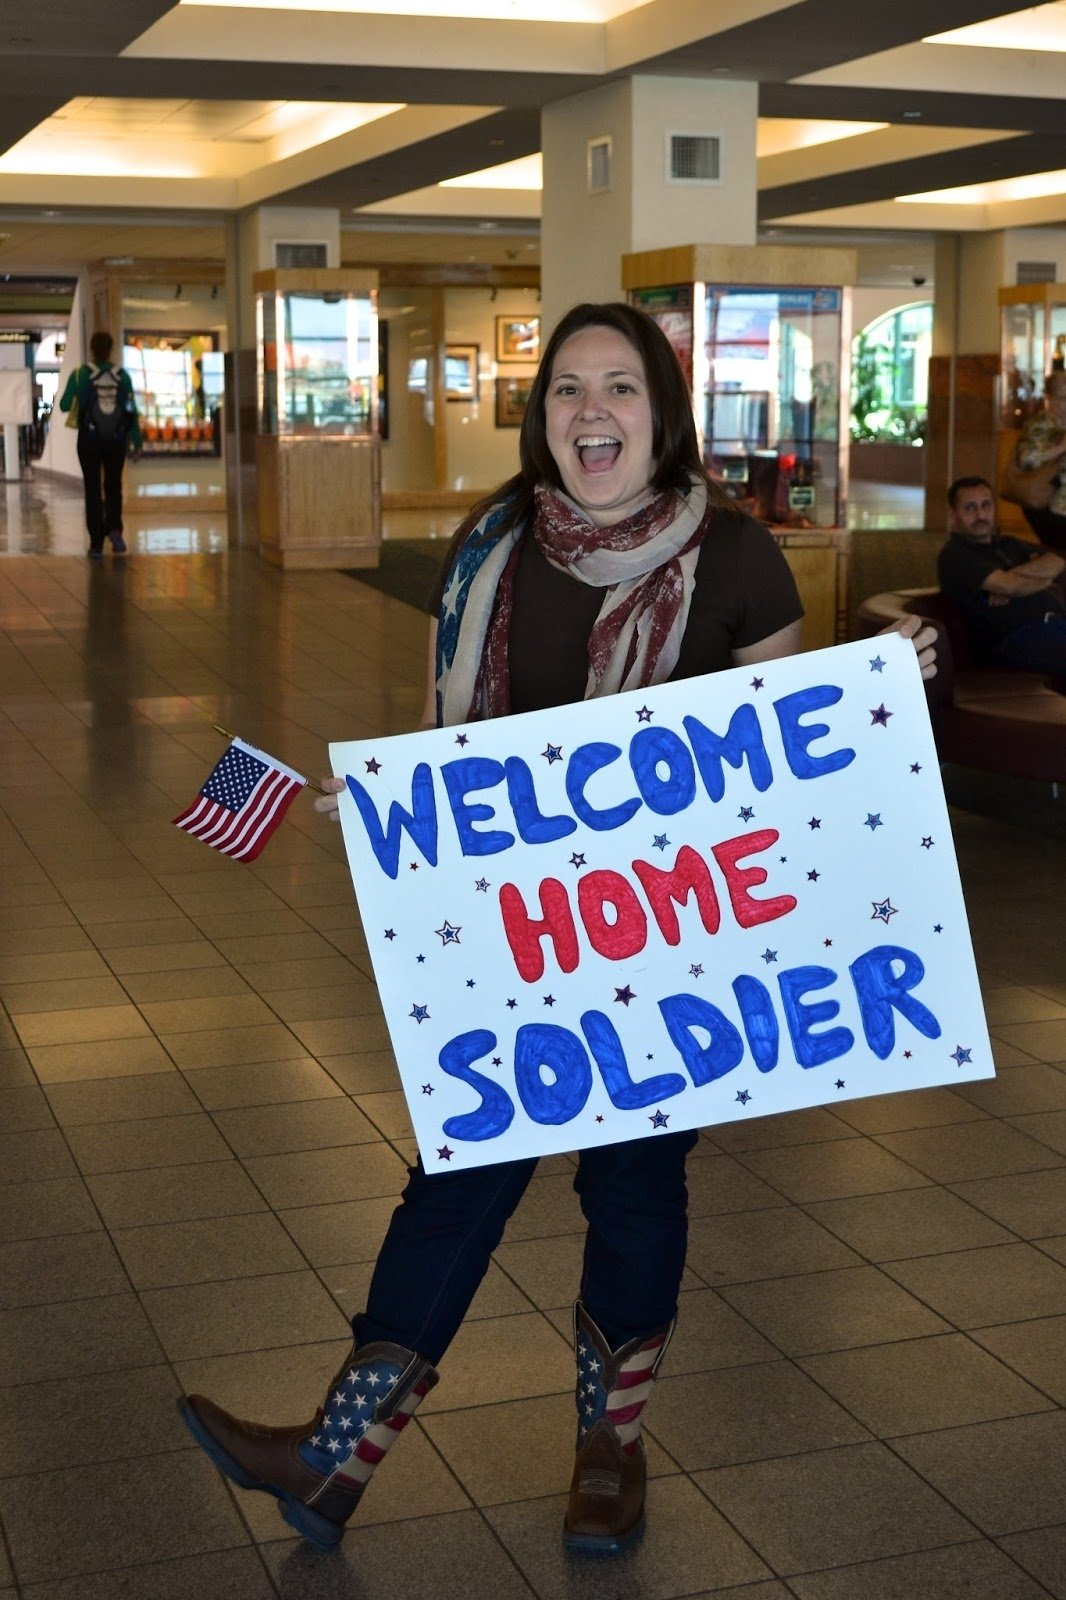 10 Unique Welcome Home Sign Ideas For Military the big list of welcome home signs when you dont know what to 1 2021